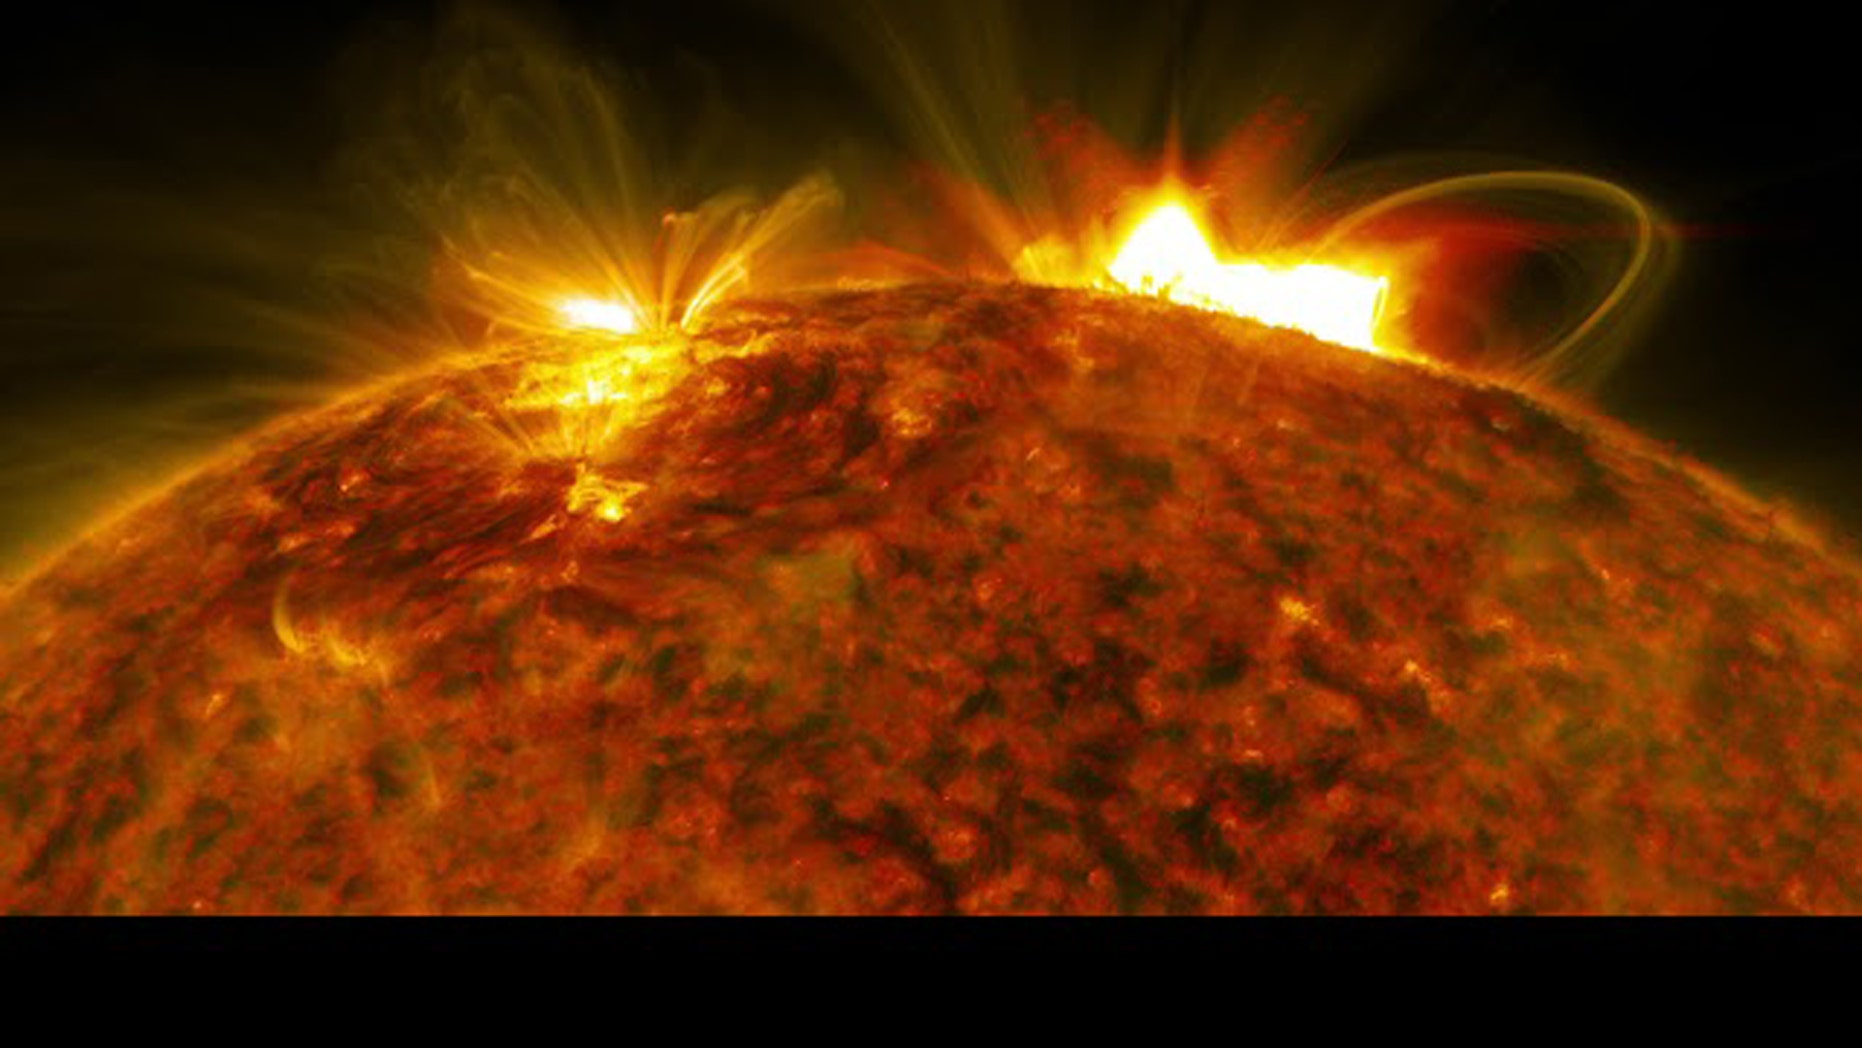 """NASA's Solar Dynamics Observatory captured an image of the massive flare that burst off the sun on Sept. 10, 201<div class=""""e3lan e3lan-in-post1""""><script async src=""""//pagead2.googlesyndication.com/pagead/js/adsbygoogle.js""""></script> <!-- Text_Image --> <ins class=""""adsbygoogle""""      style=""""display:block""""      data-ad-client=""""ca-pub-7122614041285563""""      data-ad-slot=""""2268374881""""      data-ad-format=""""auto""""      data-full-width-responsive=""""true""""></ins> <script> (adsbygoogle = window.adsbygoogle 